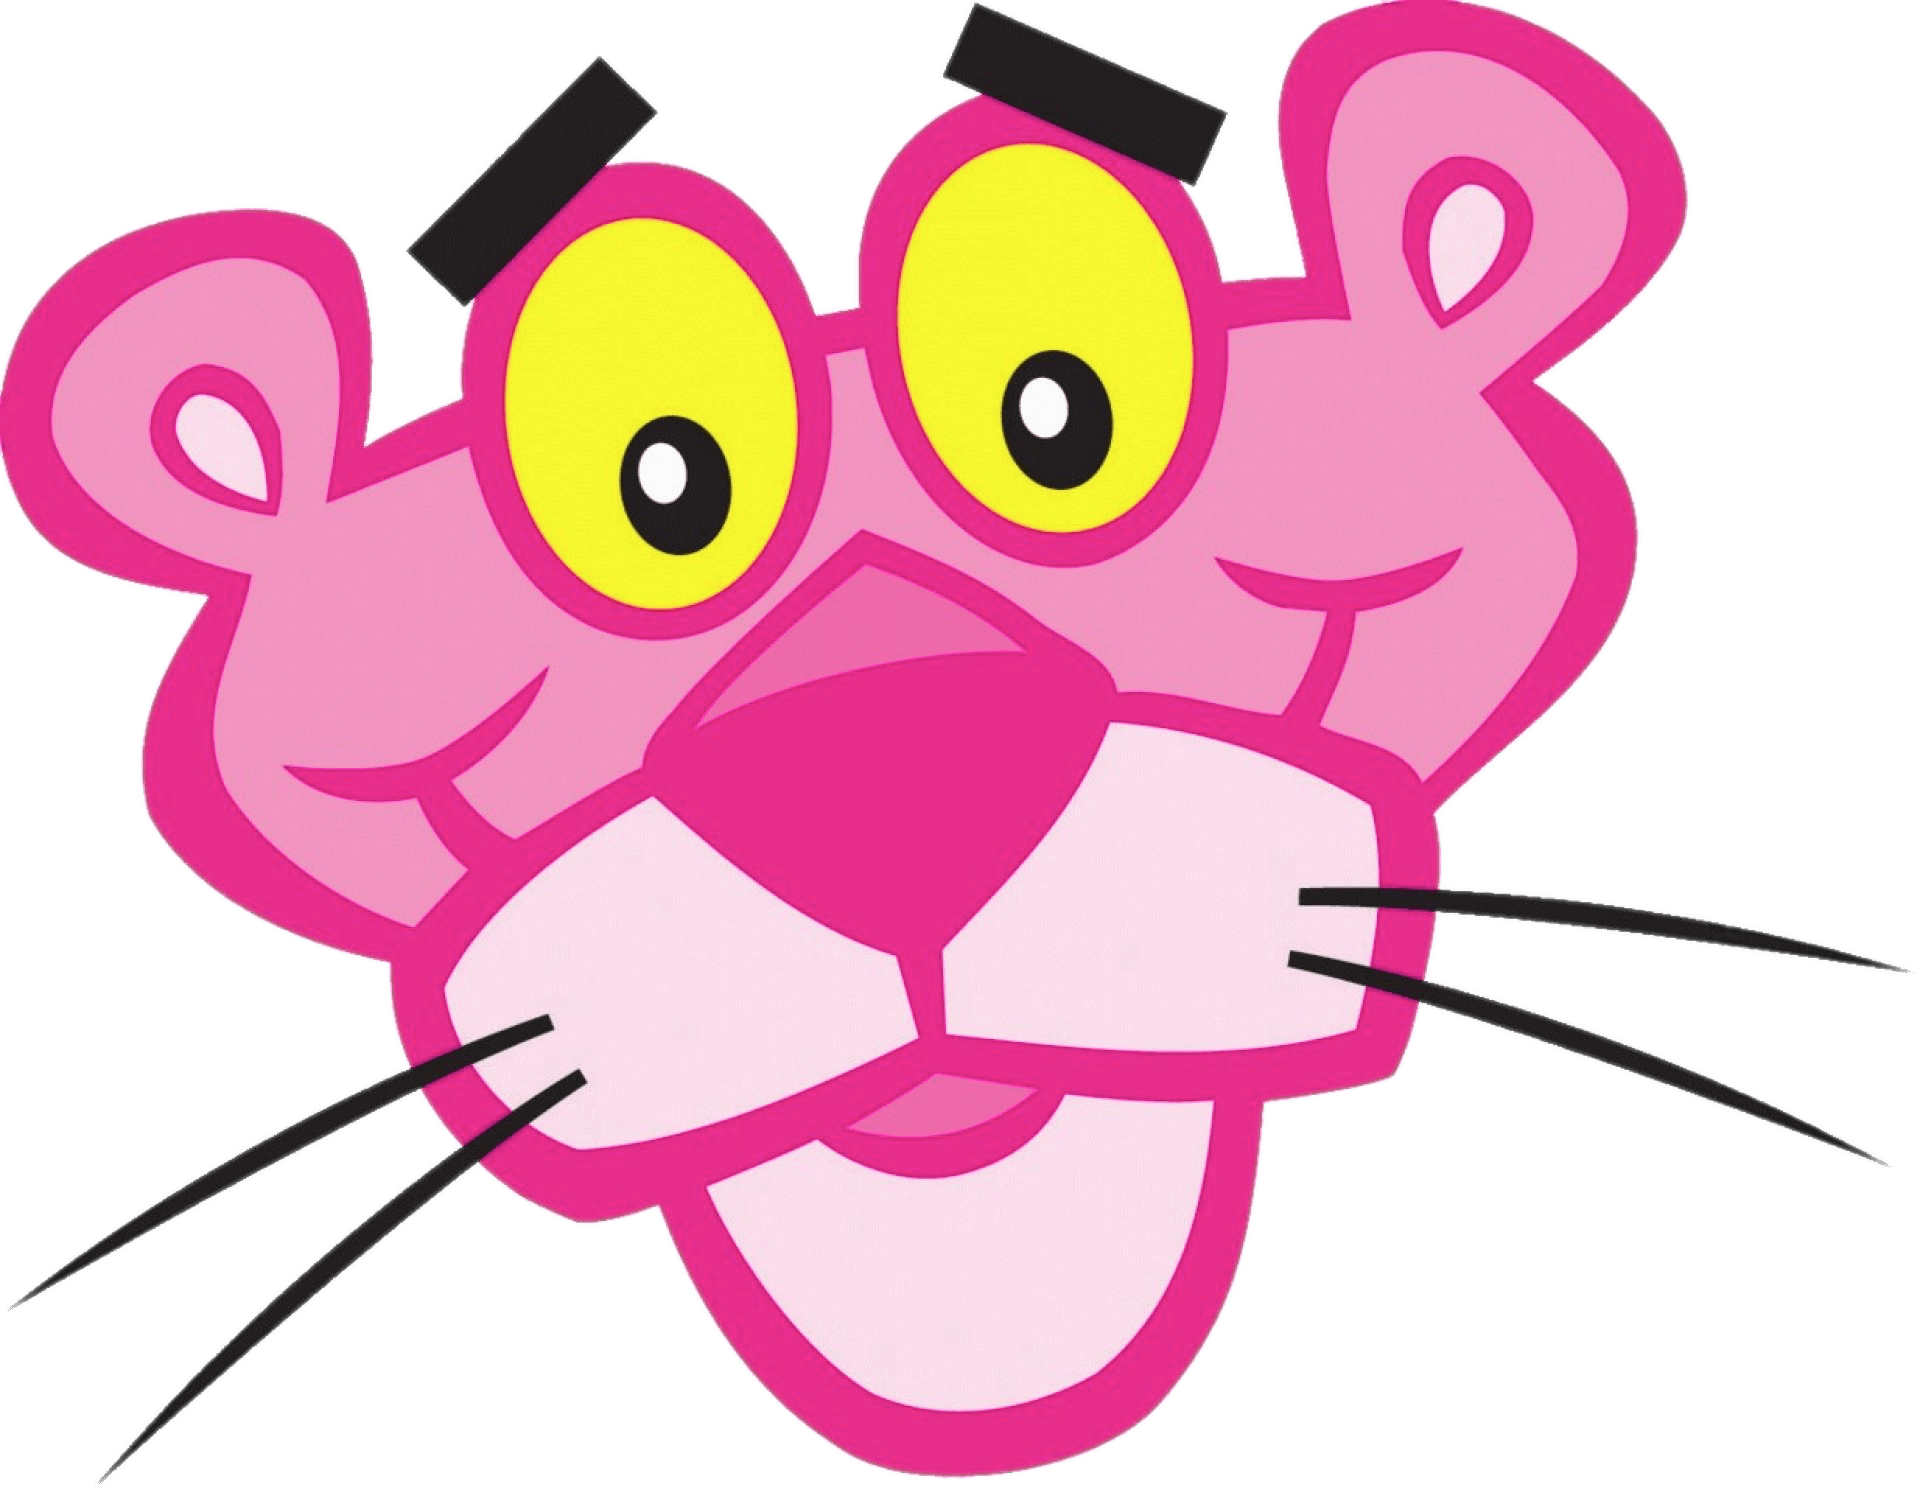 Pink panther of pennsylvania. Grandmother clipart pensioner